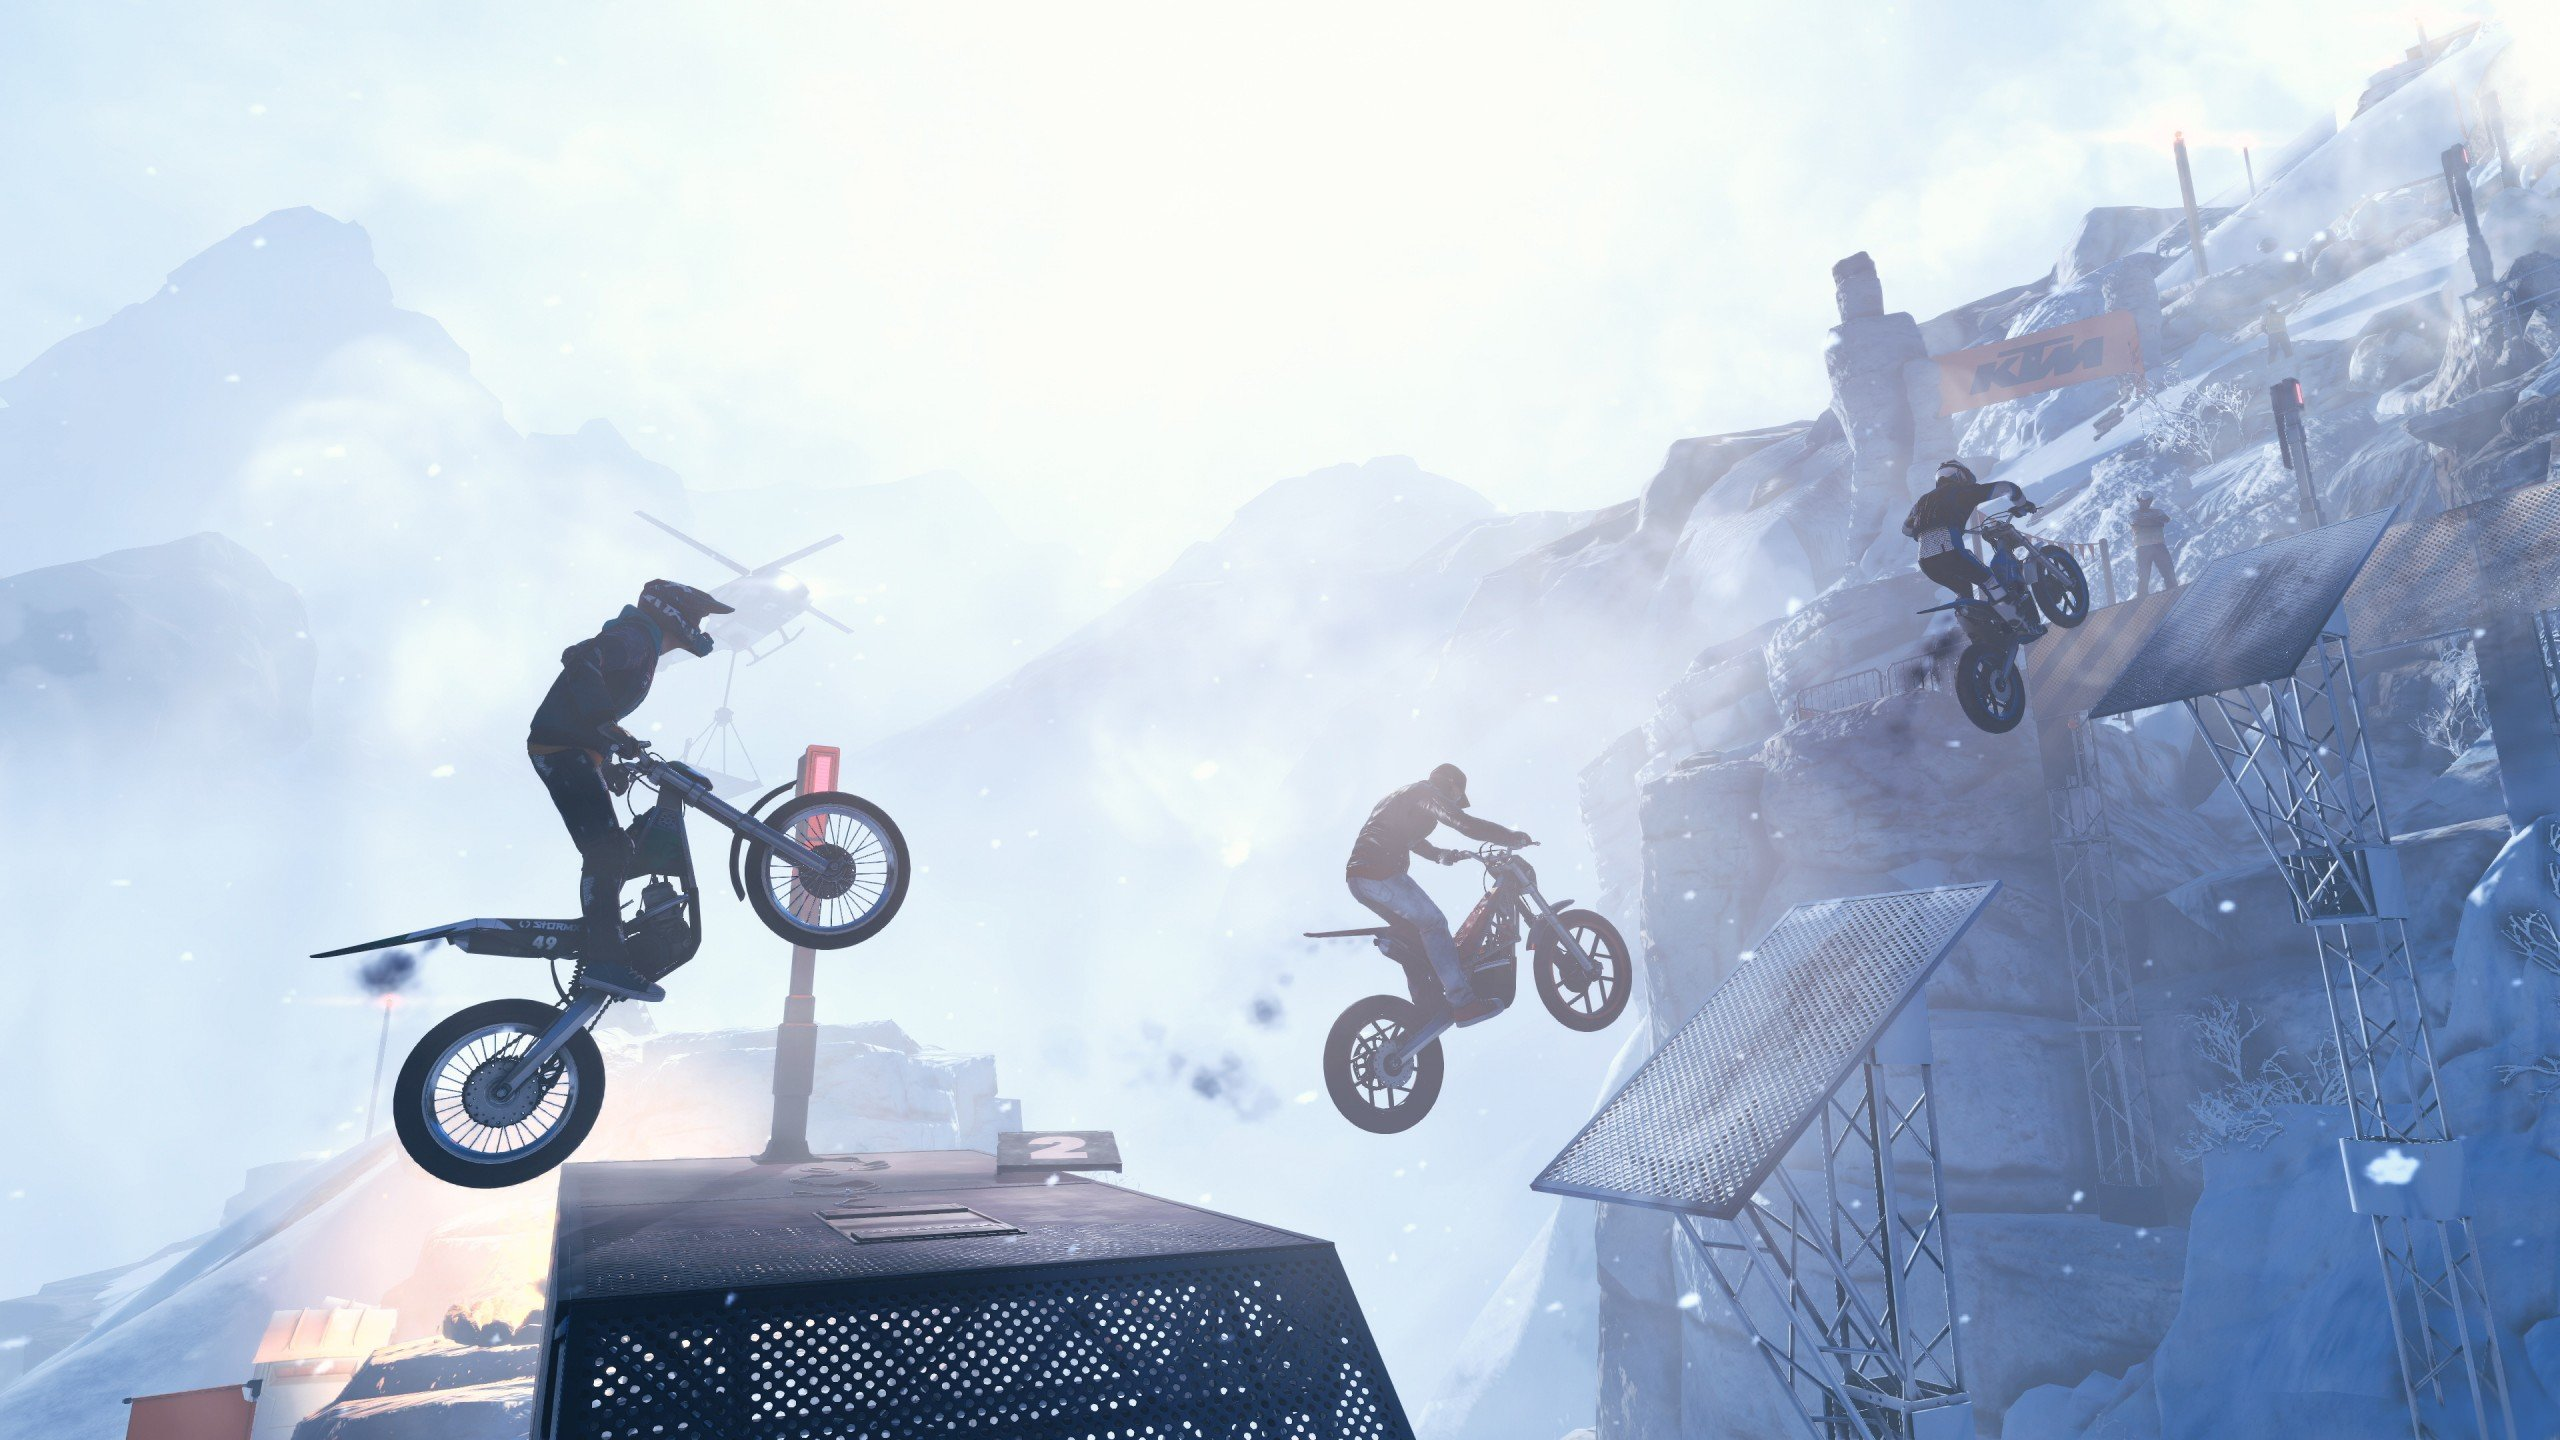 Wallpaper Trials Rising E3 2018 screenshot 4K Games 19107 2560x1440